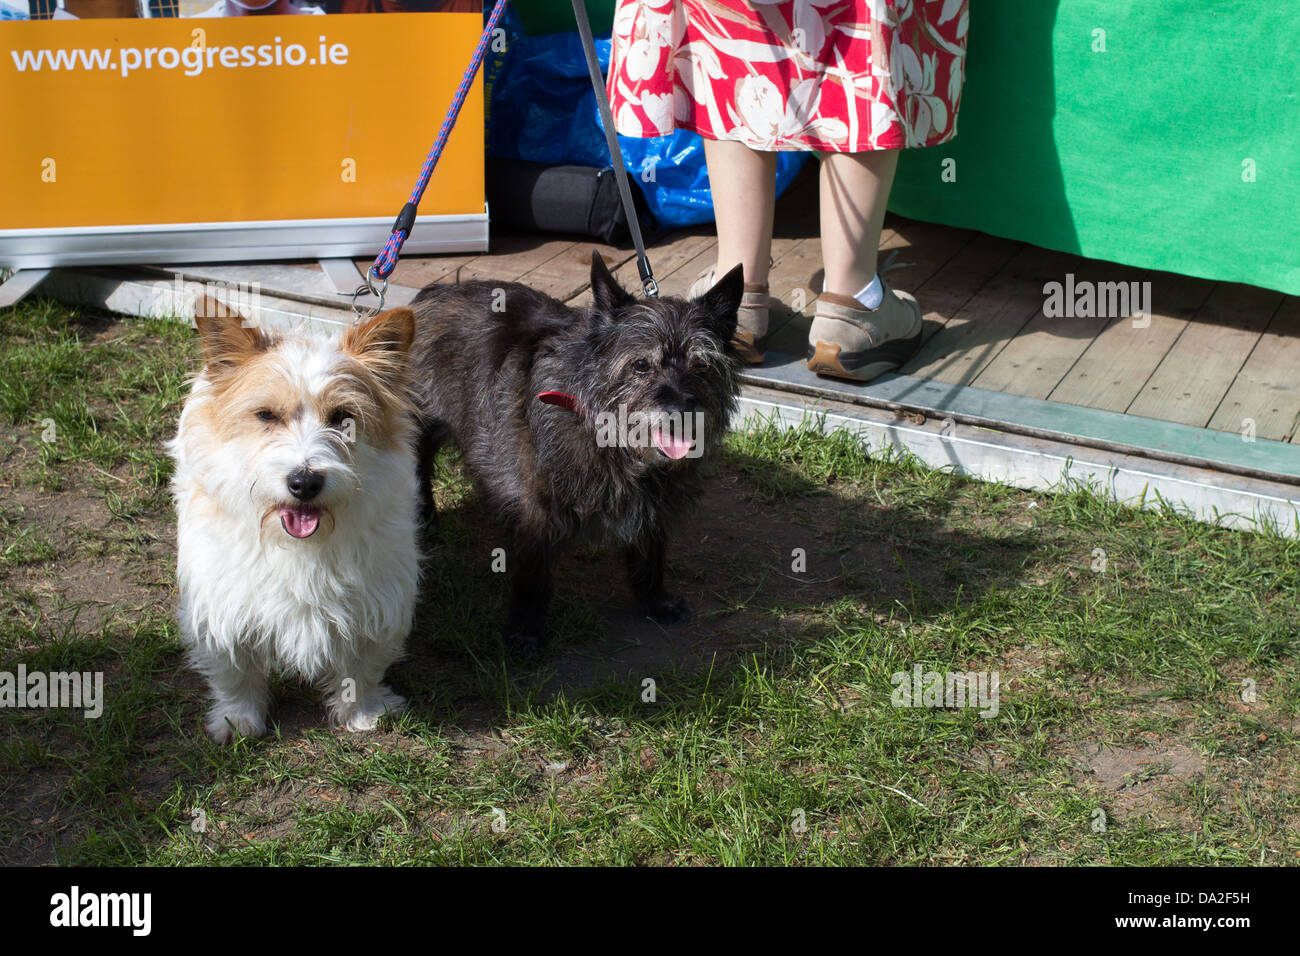 Two small dogs on dog-leads. - Stock Image